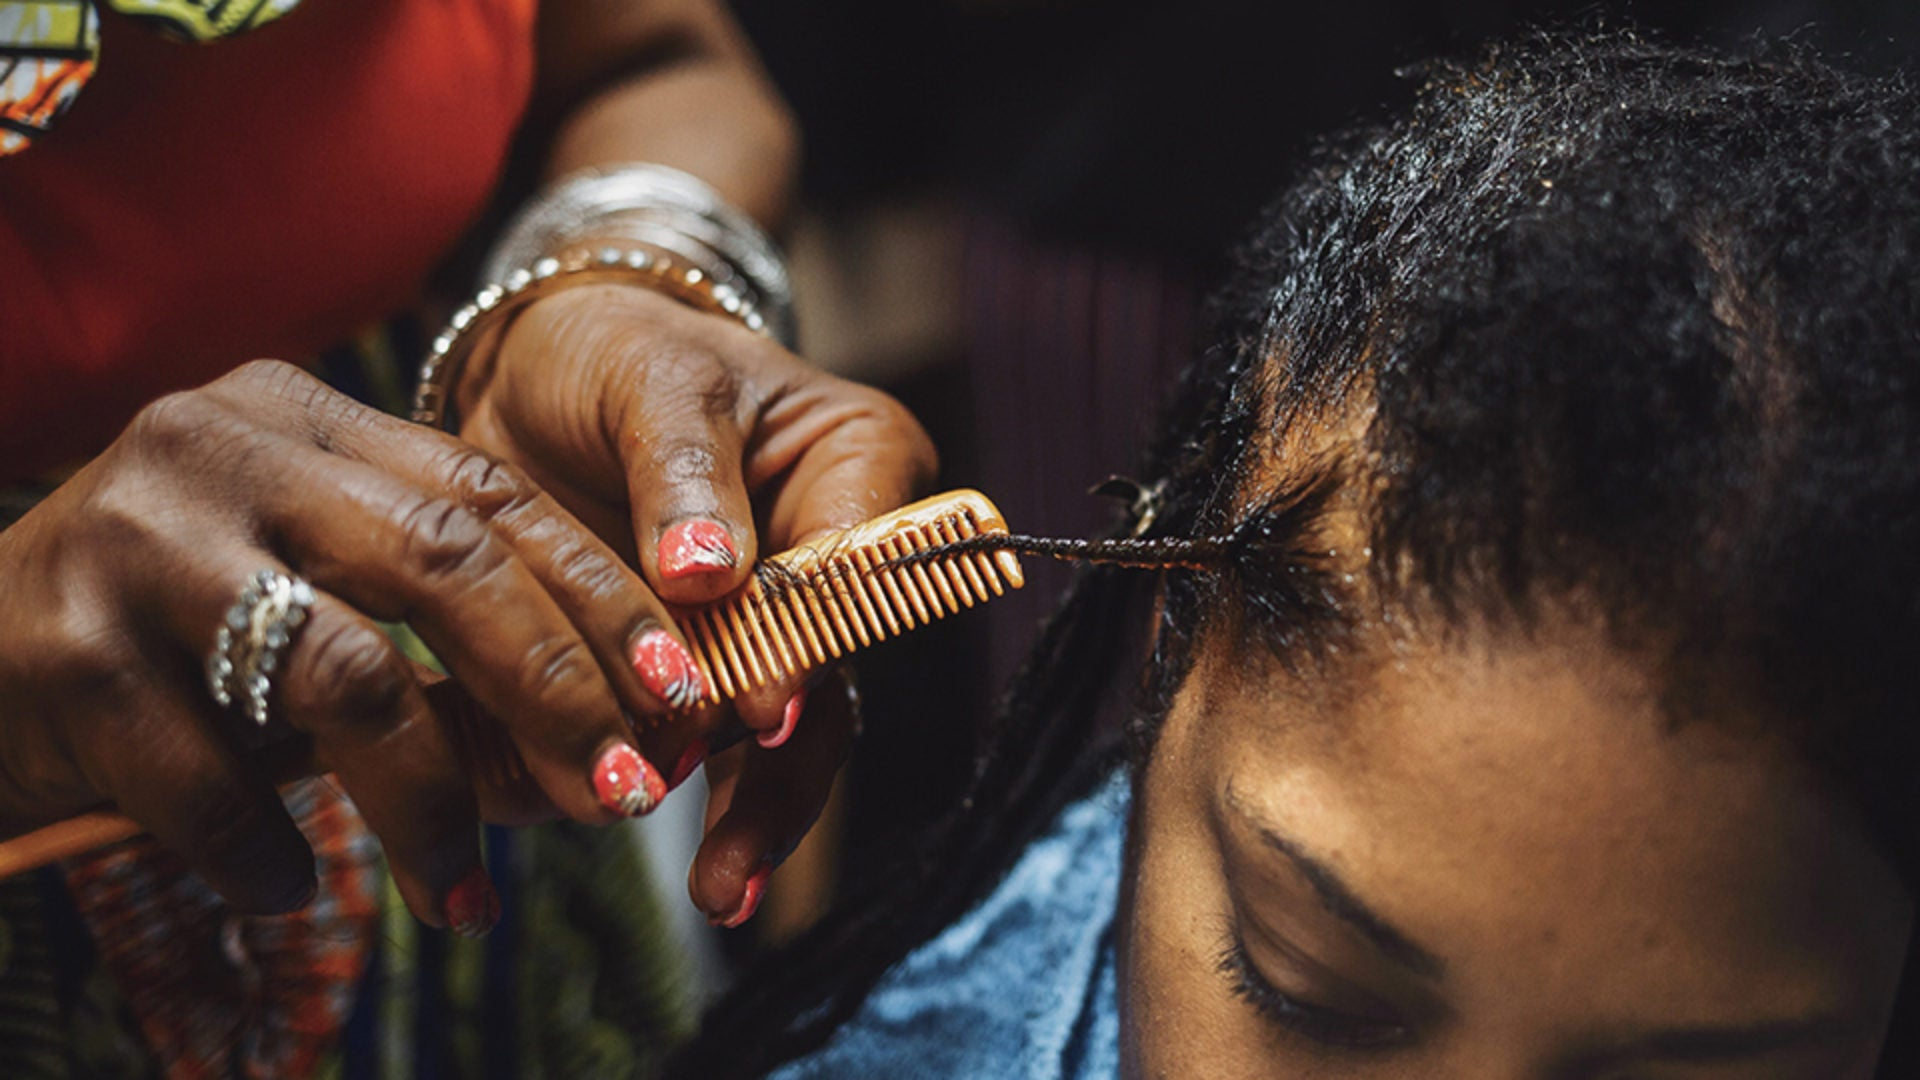 Natural Hair Braiders Confront Unjust Licensing Requirements